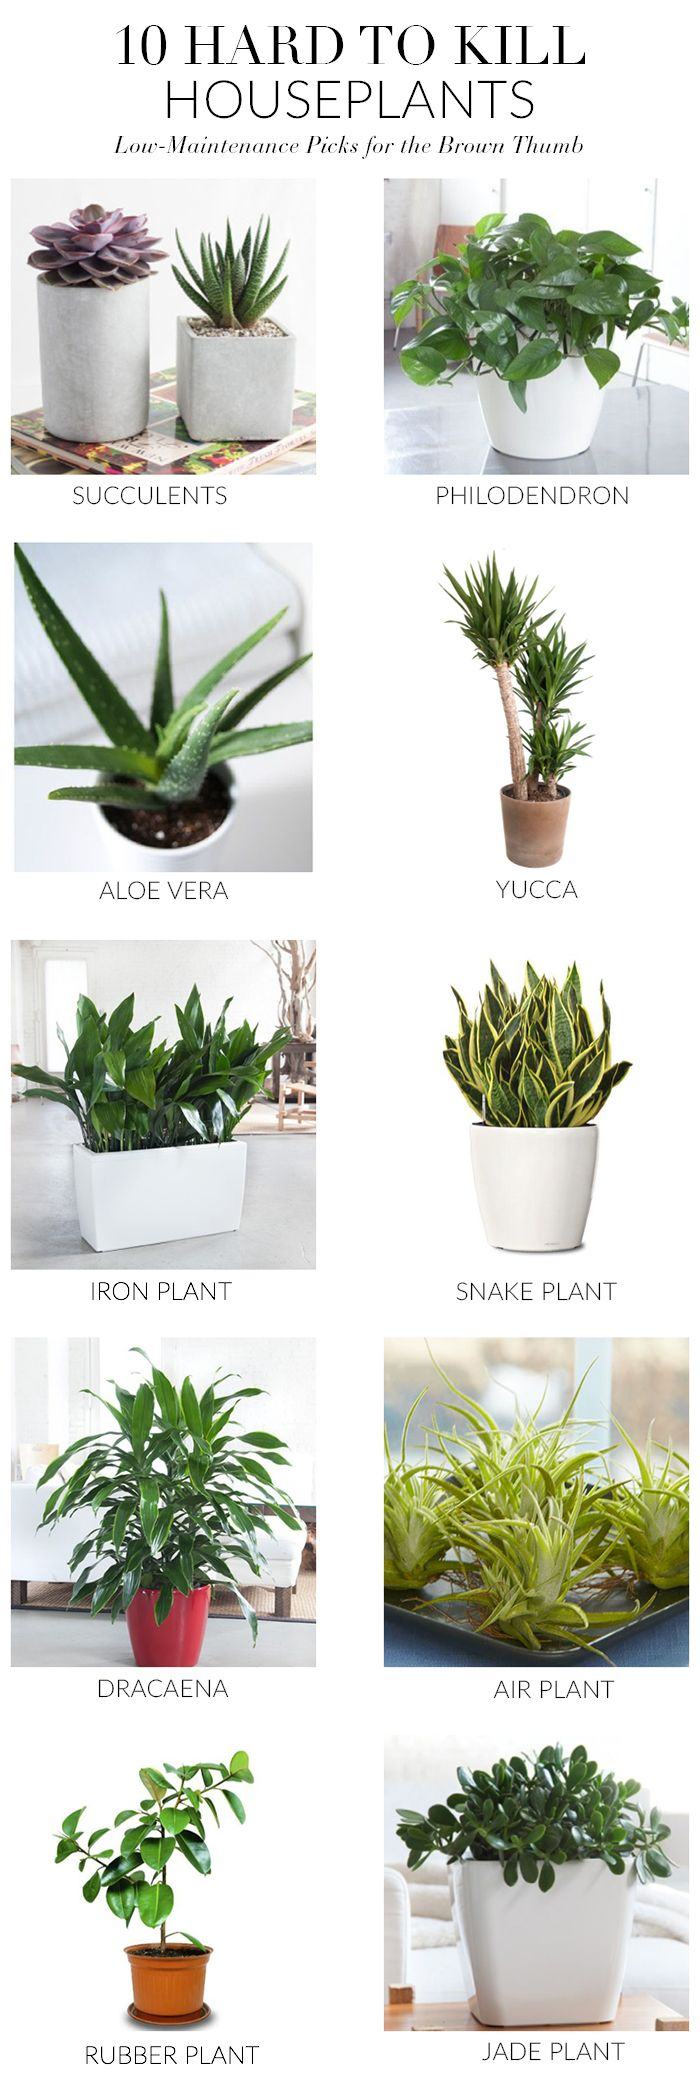 1000 ideas about good indoor plants on pinterest best indoor plants plants and house plants - Best indoor plants for low light ...